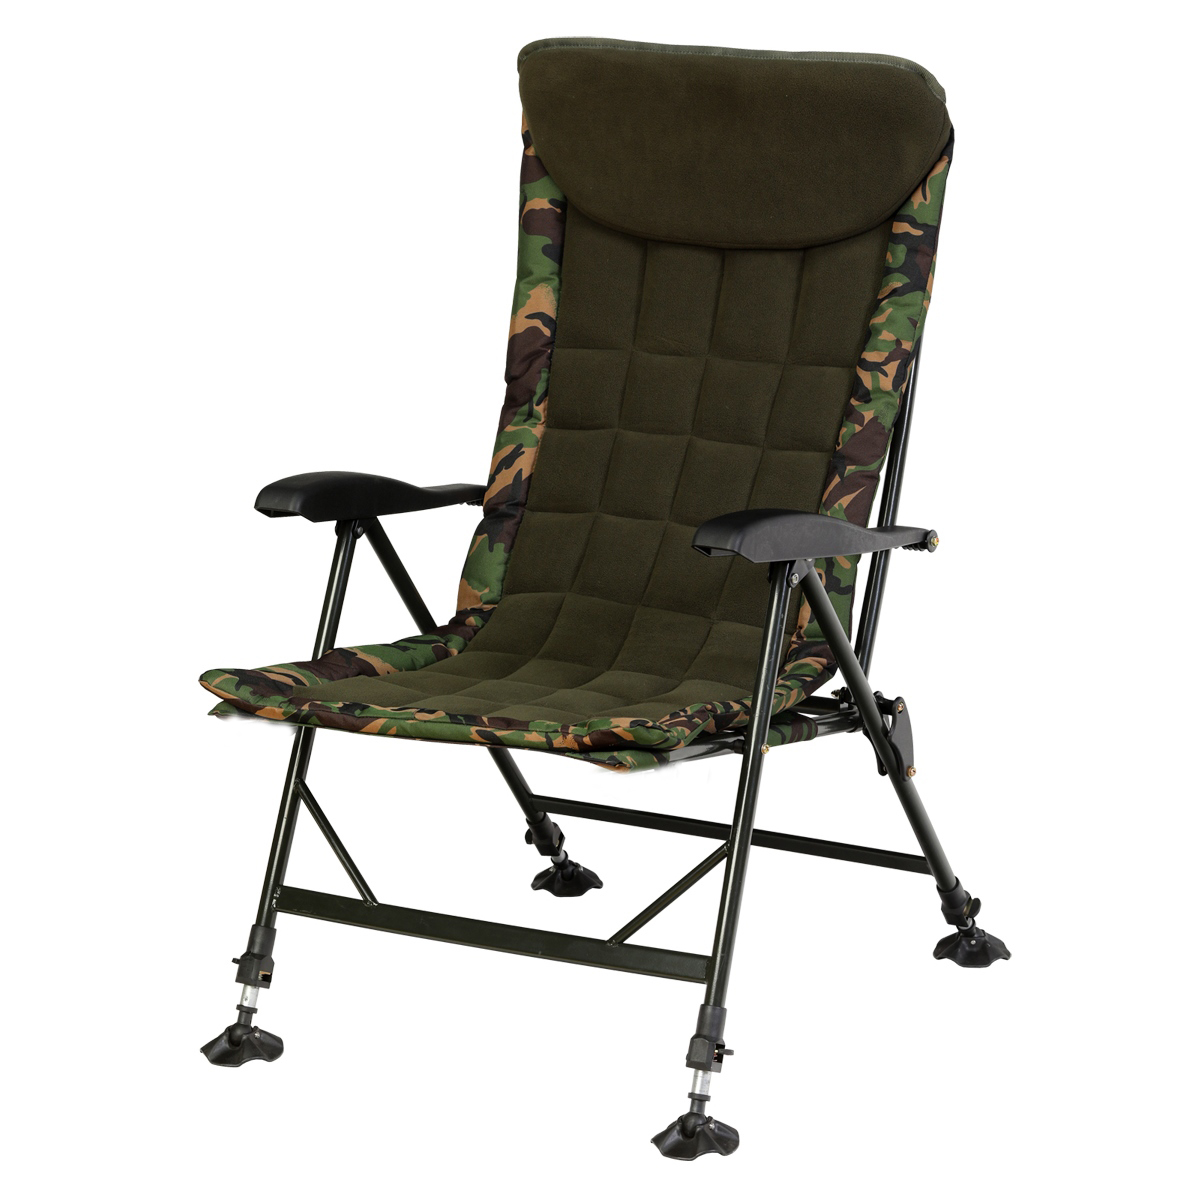 GIANTS FISHING Kreslo - Komfy Camo Chair